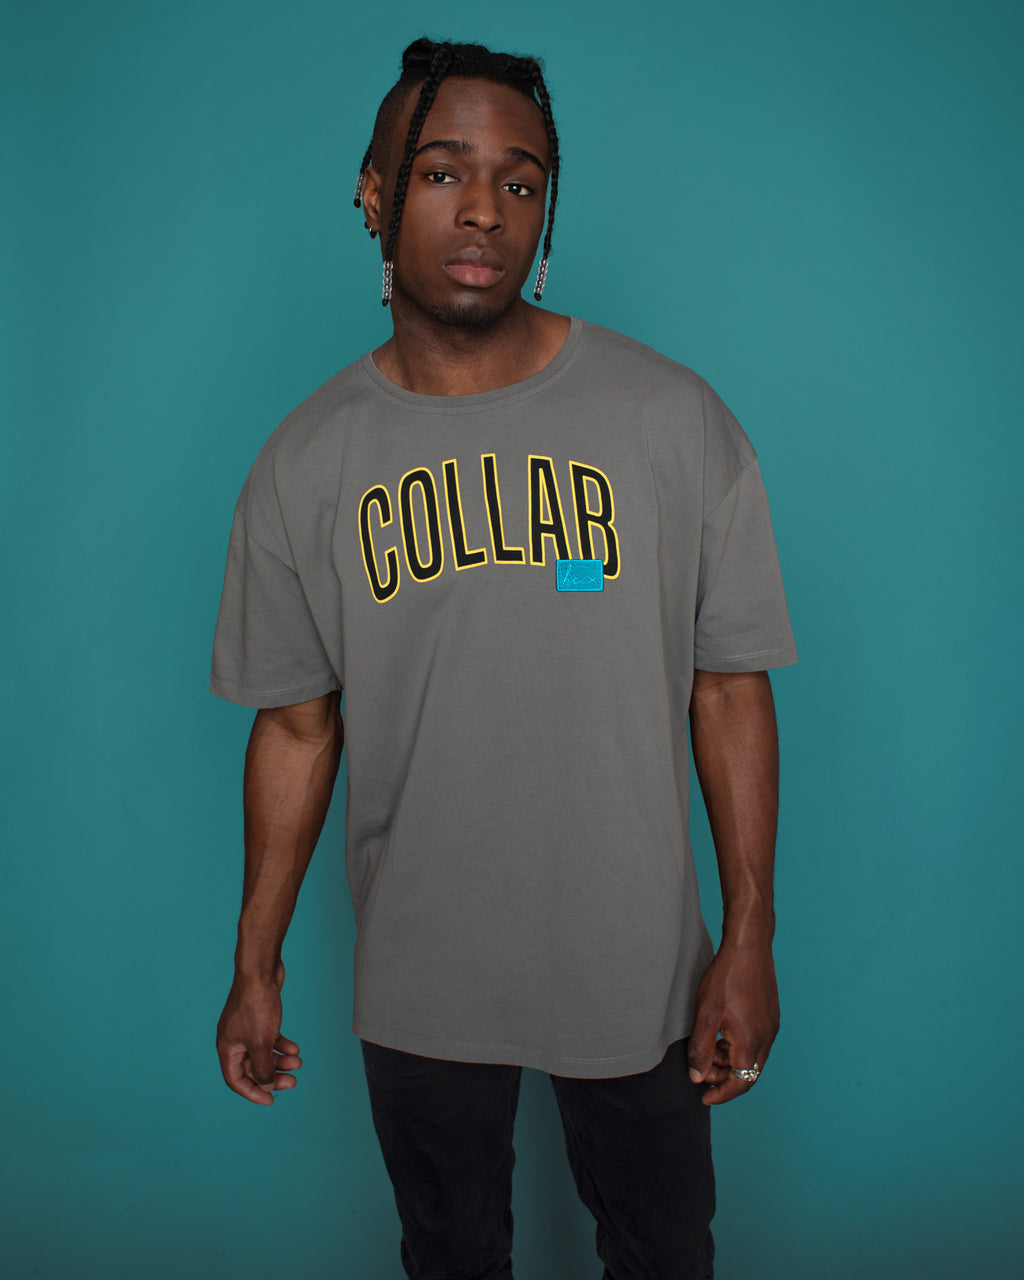 College T-Shirt - HoodieCollab